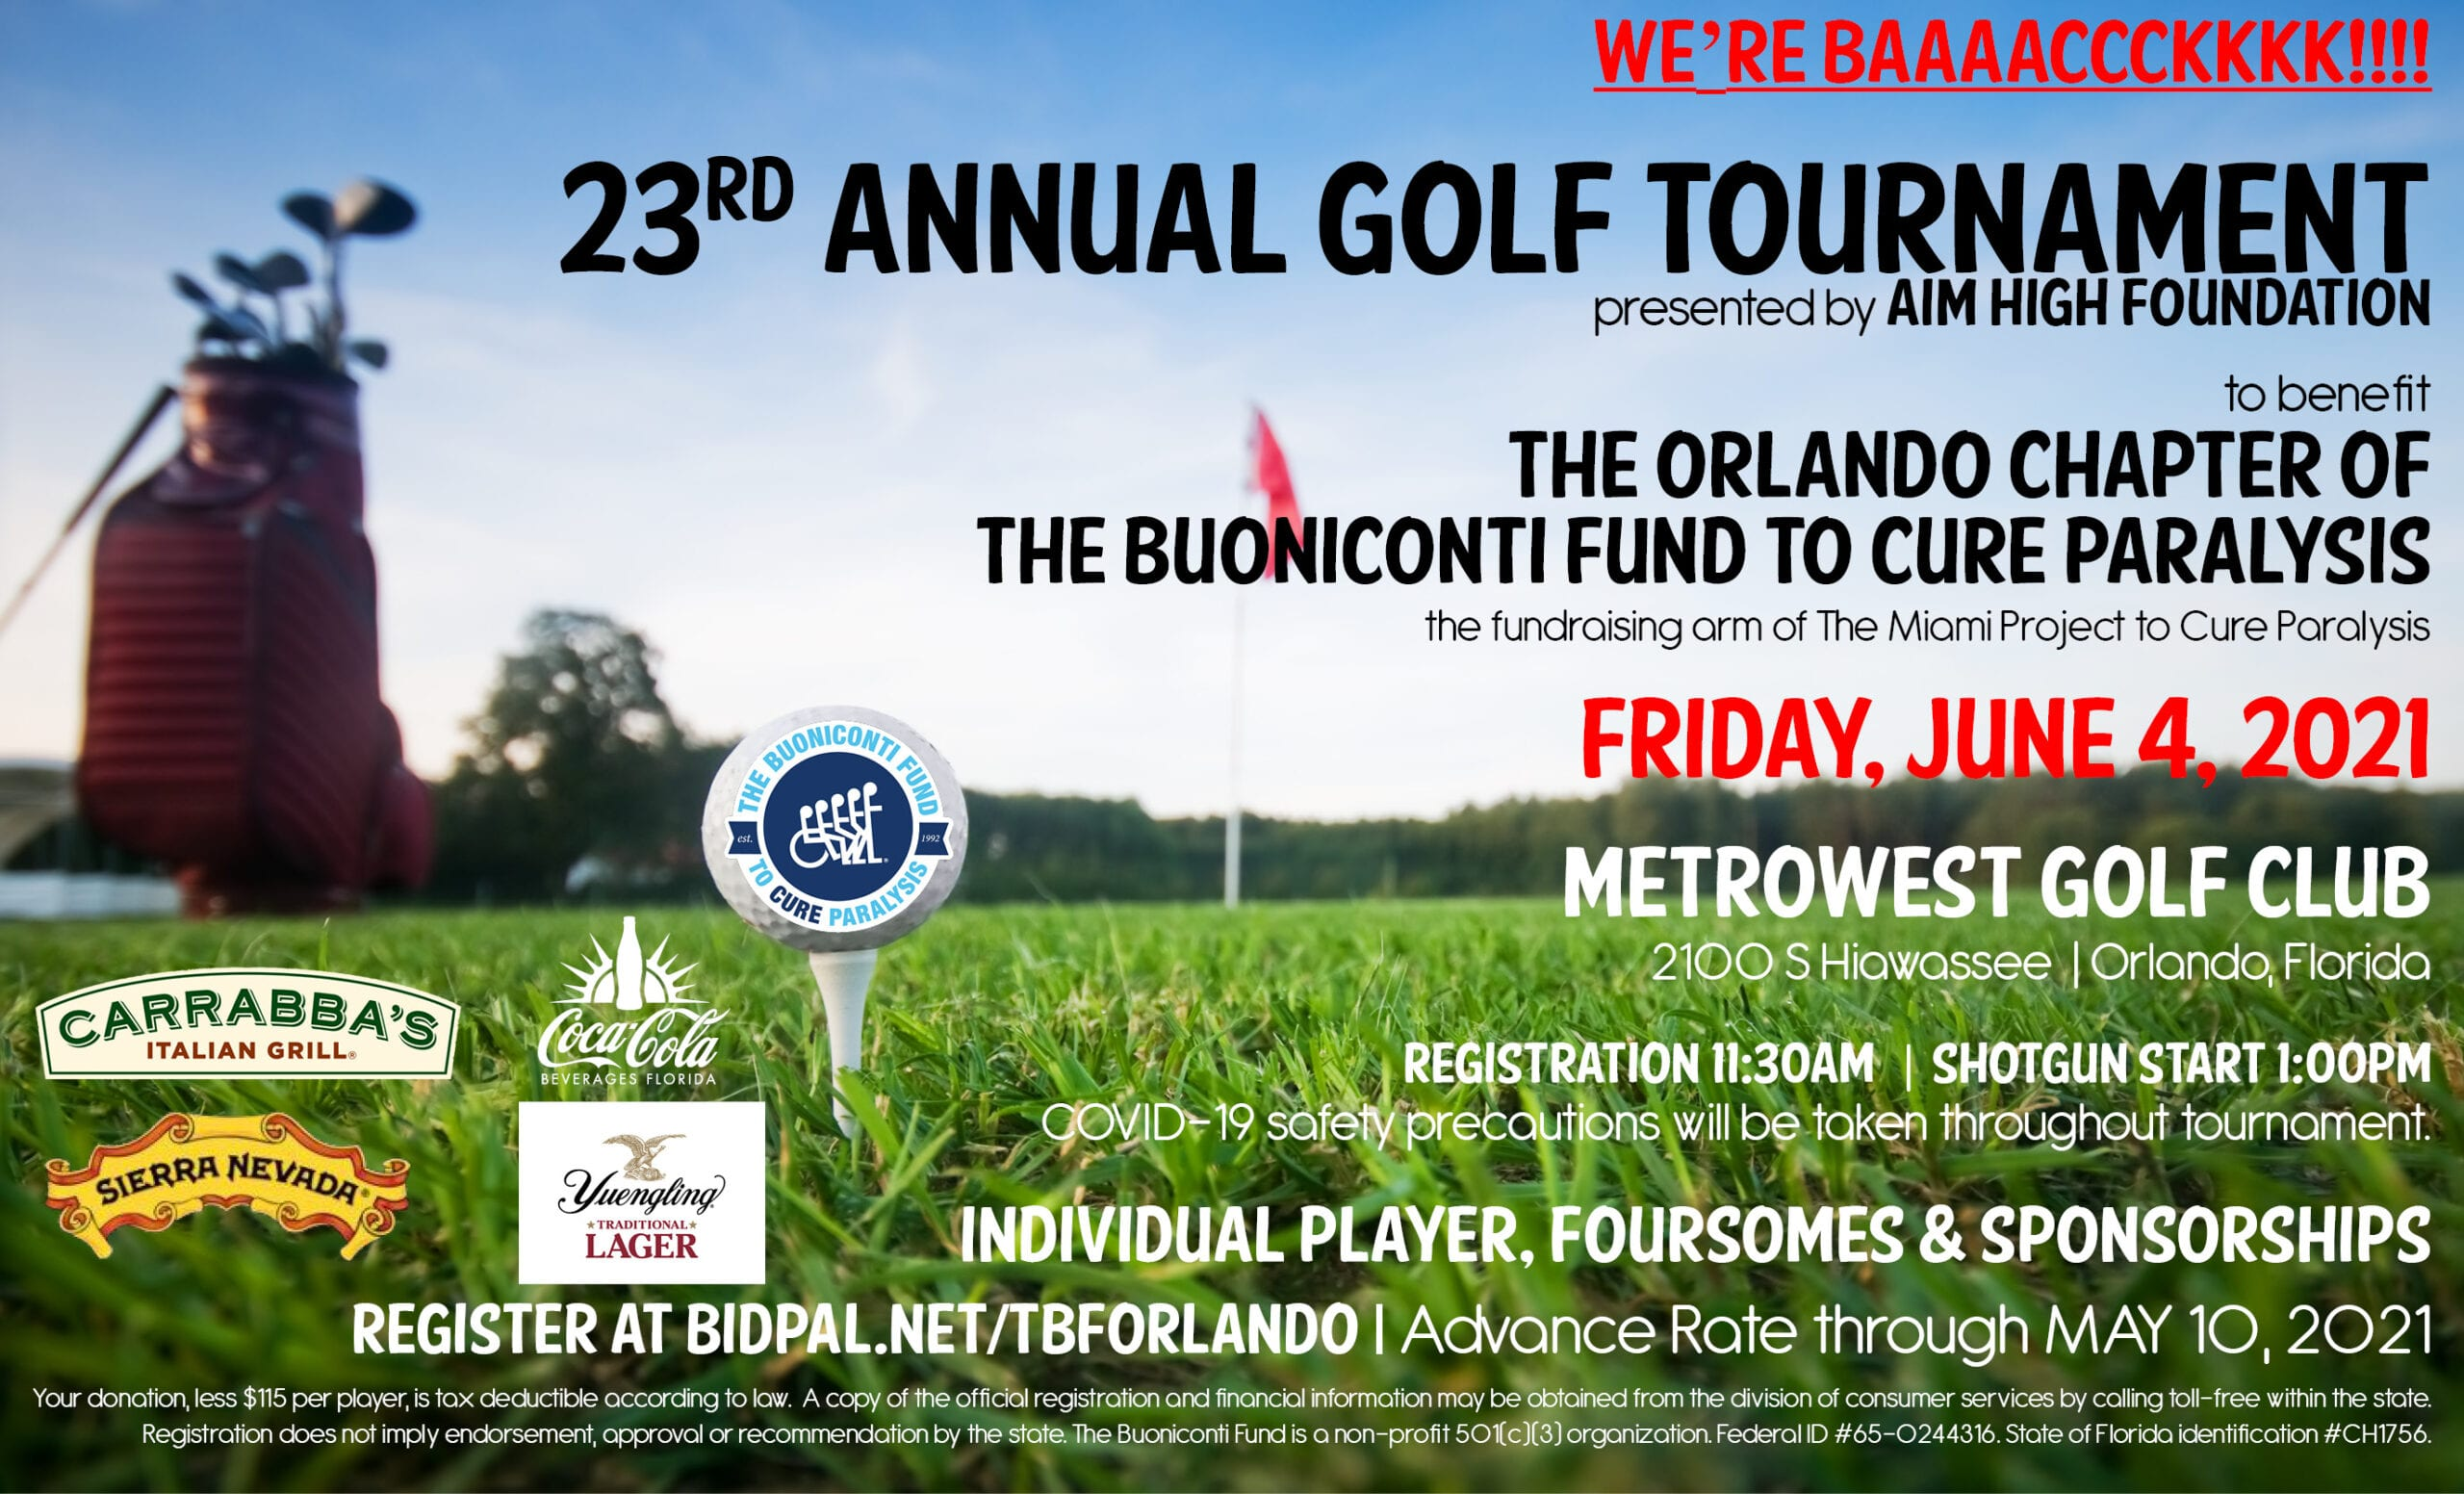 23rd Annual Orlando Chapter Golf Tournament presented by AIM High Foundation